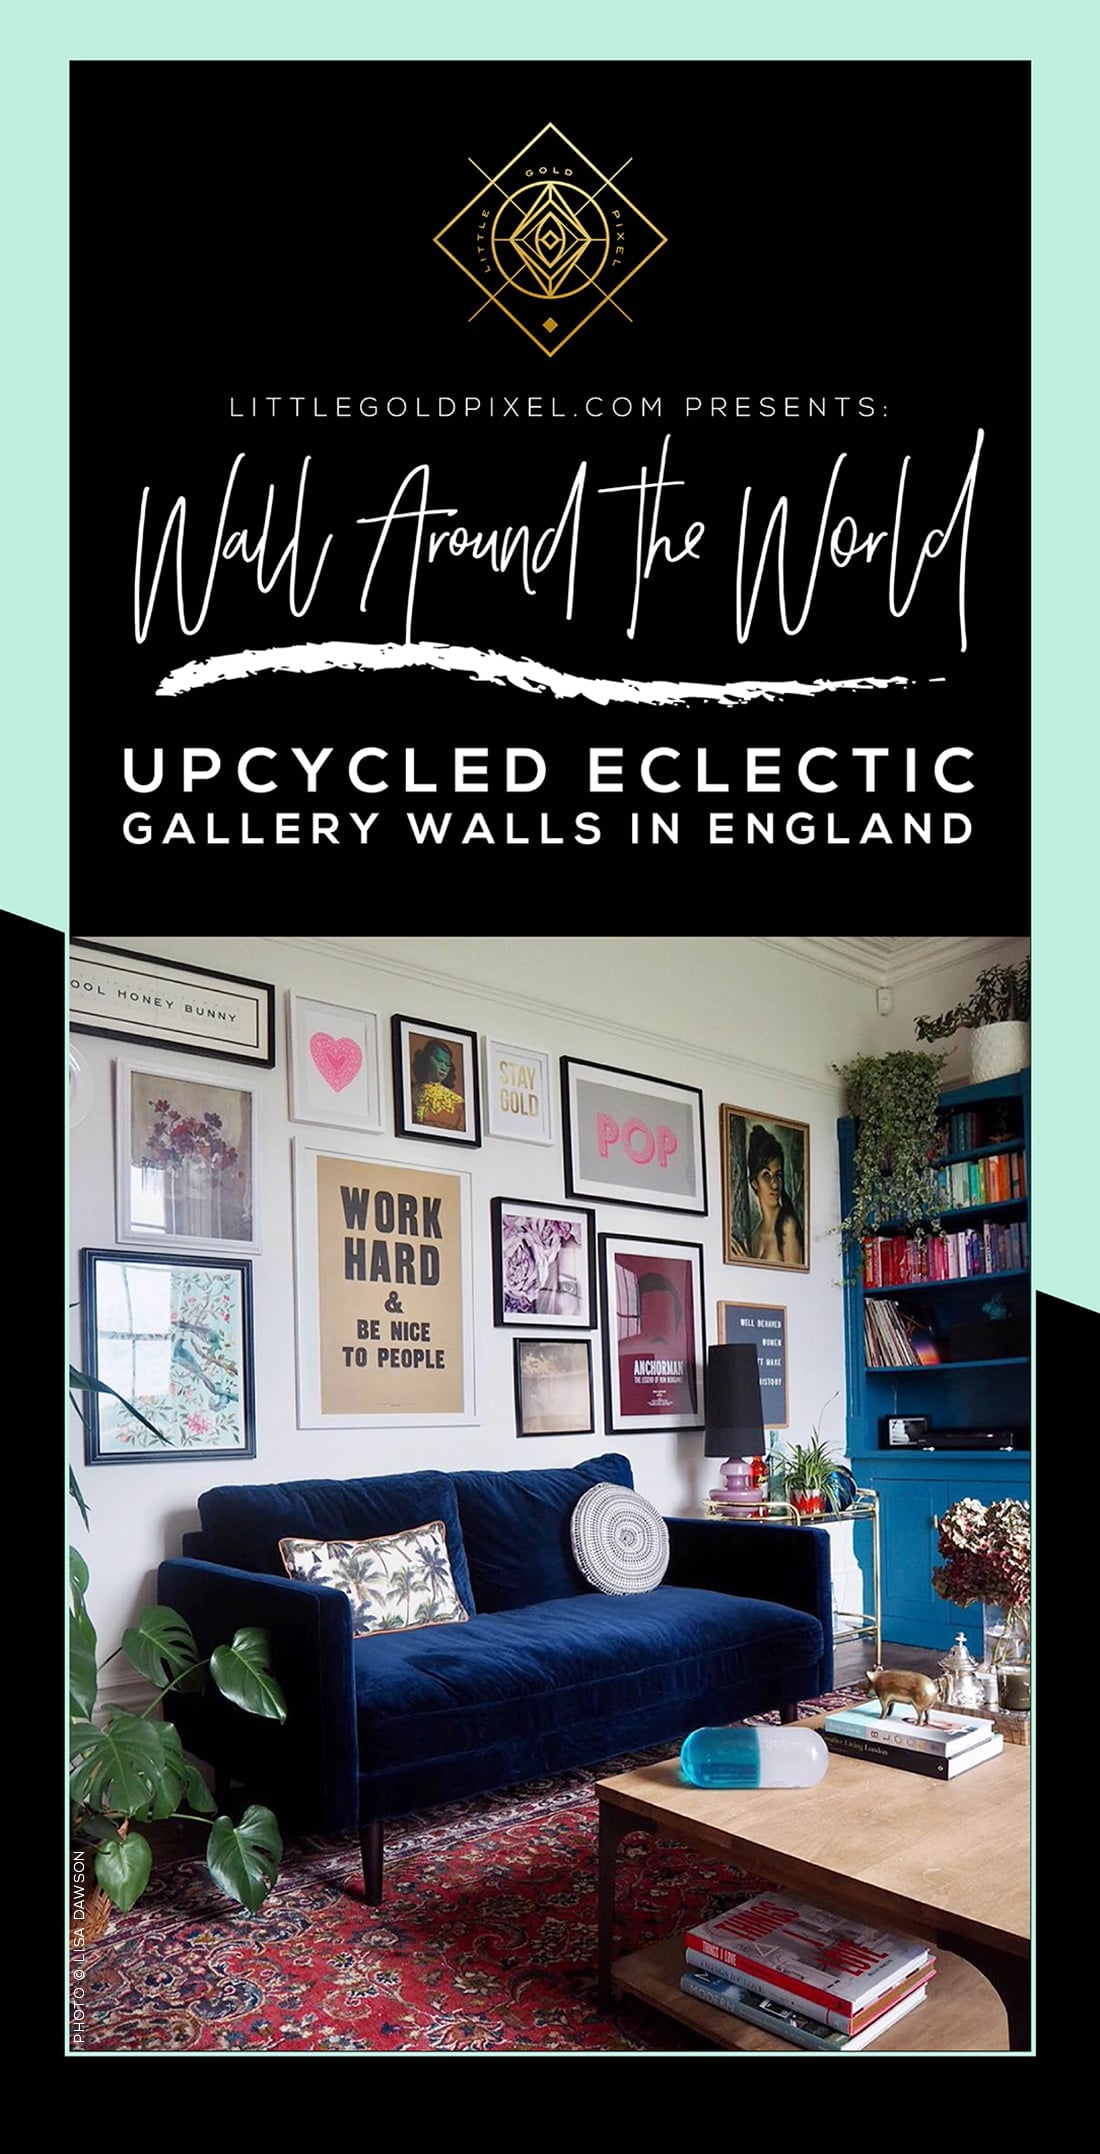 Wall Around the World: A Gallery Wall Series by Little Gold Pixel • Part 4: Upcycled Eclectic Gallery Wall in England • Modern, glam, thrifted • #hometour #decorideas #interiors